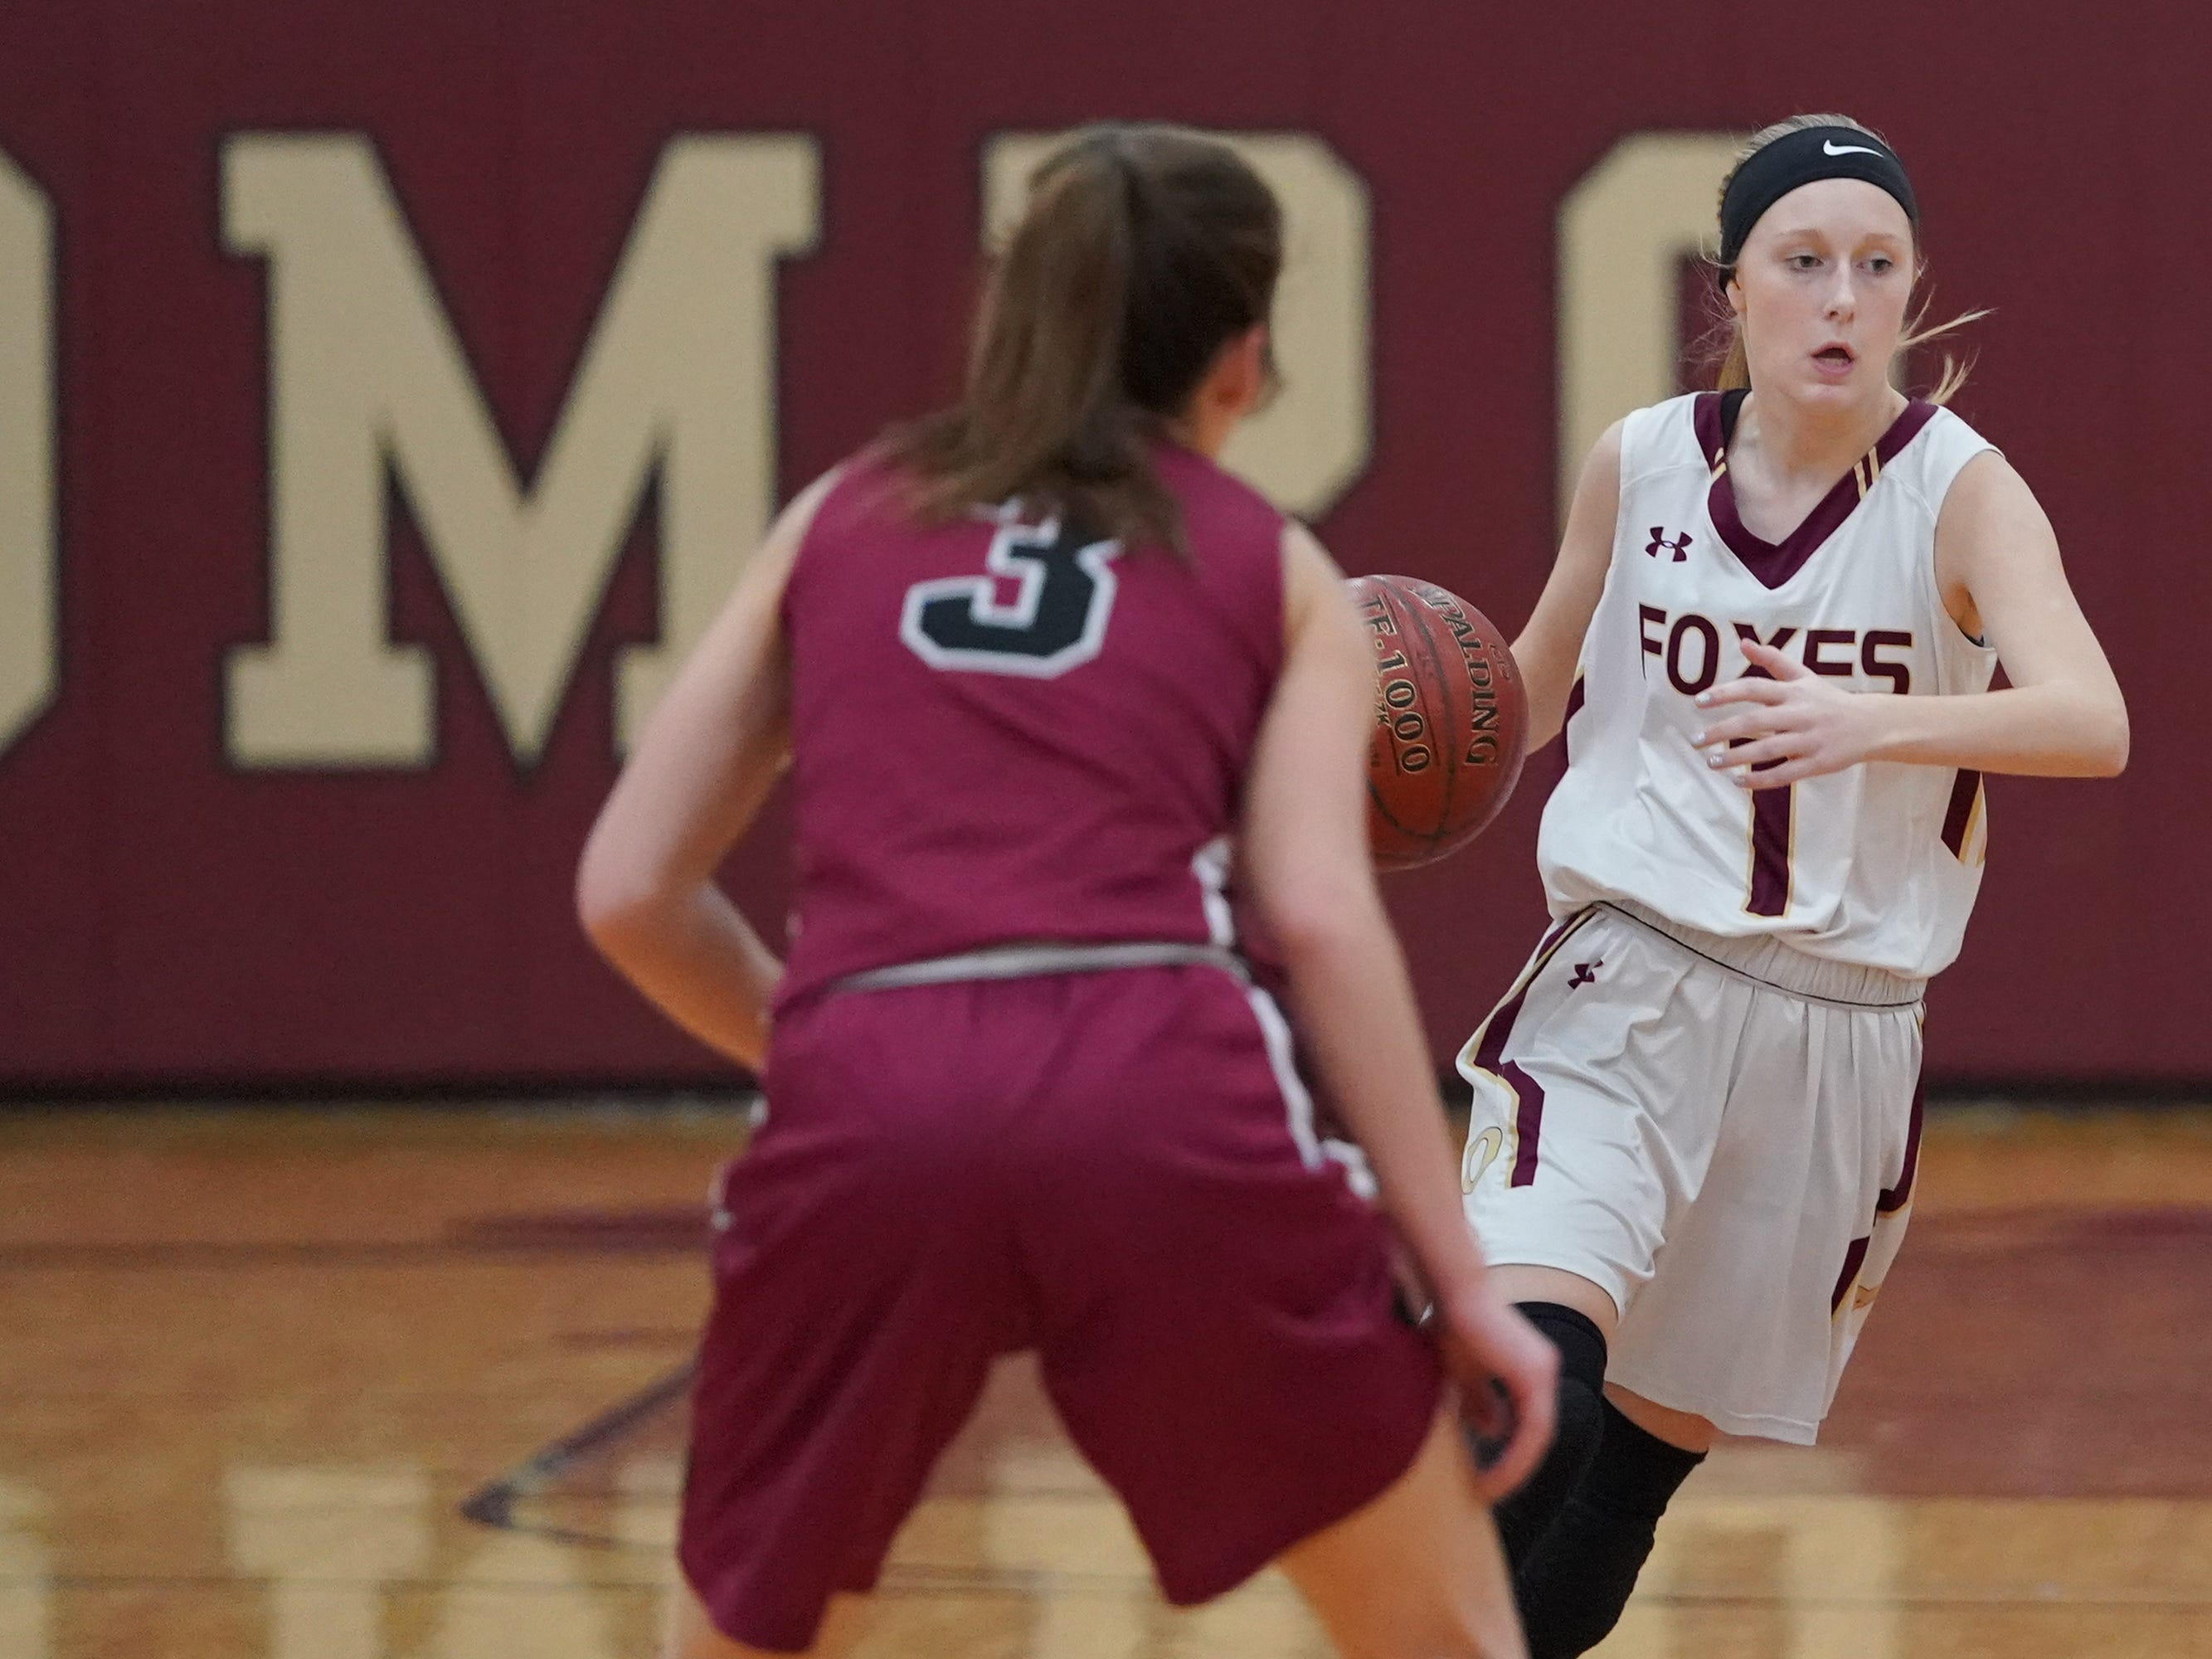 Amelia Eichmann (1) of Omro drives around Amber Schraufnagel (3) of Mayville. The Omro Foxes hosted the Mayville Cardinals in a Flyway Conference basketball game Friday evening, January 4, 2019.